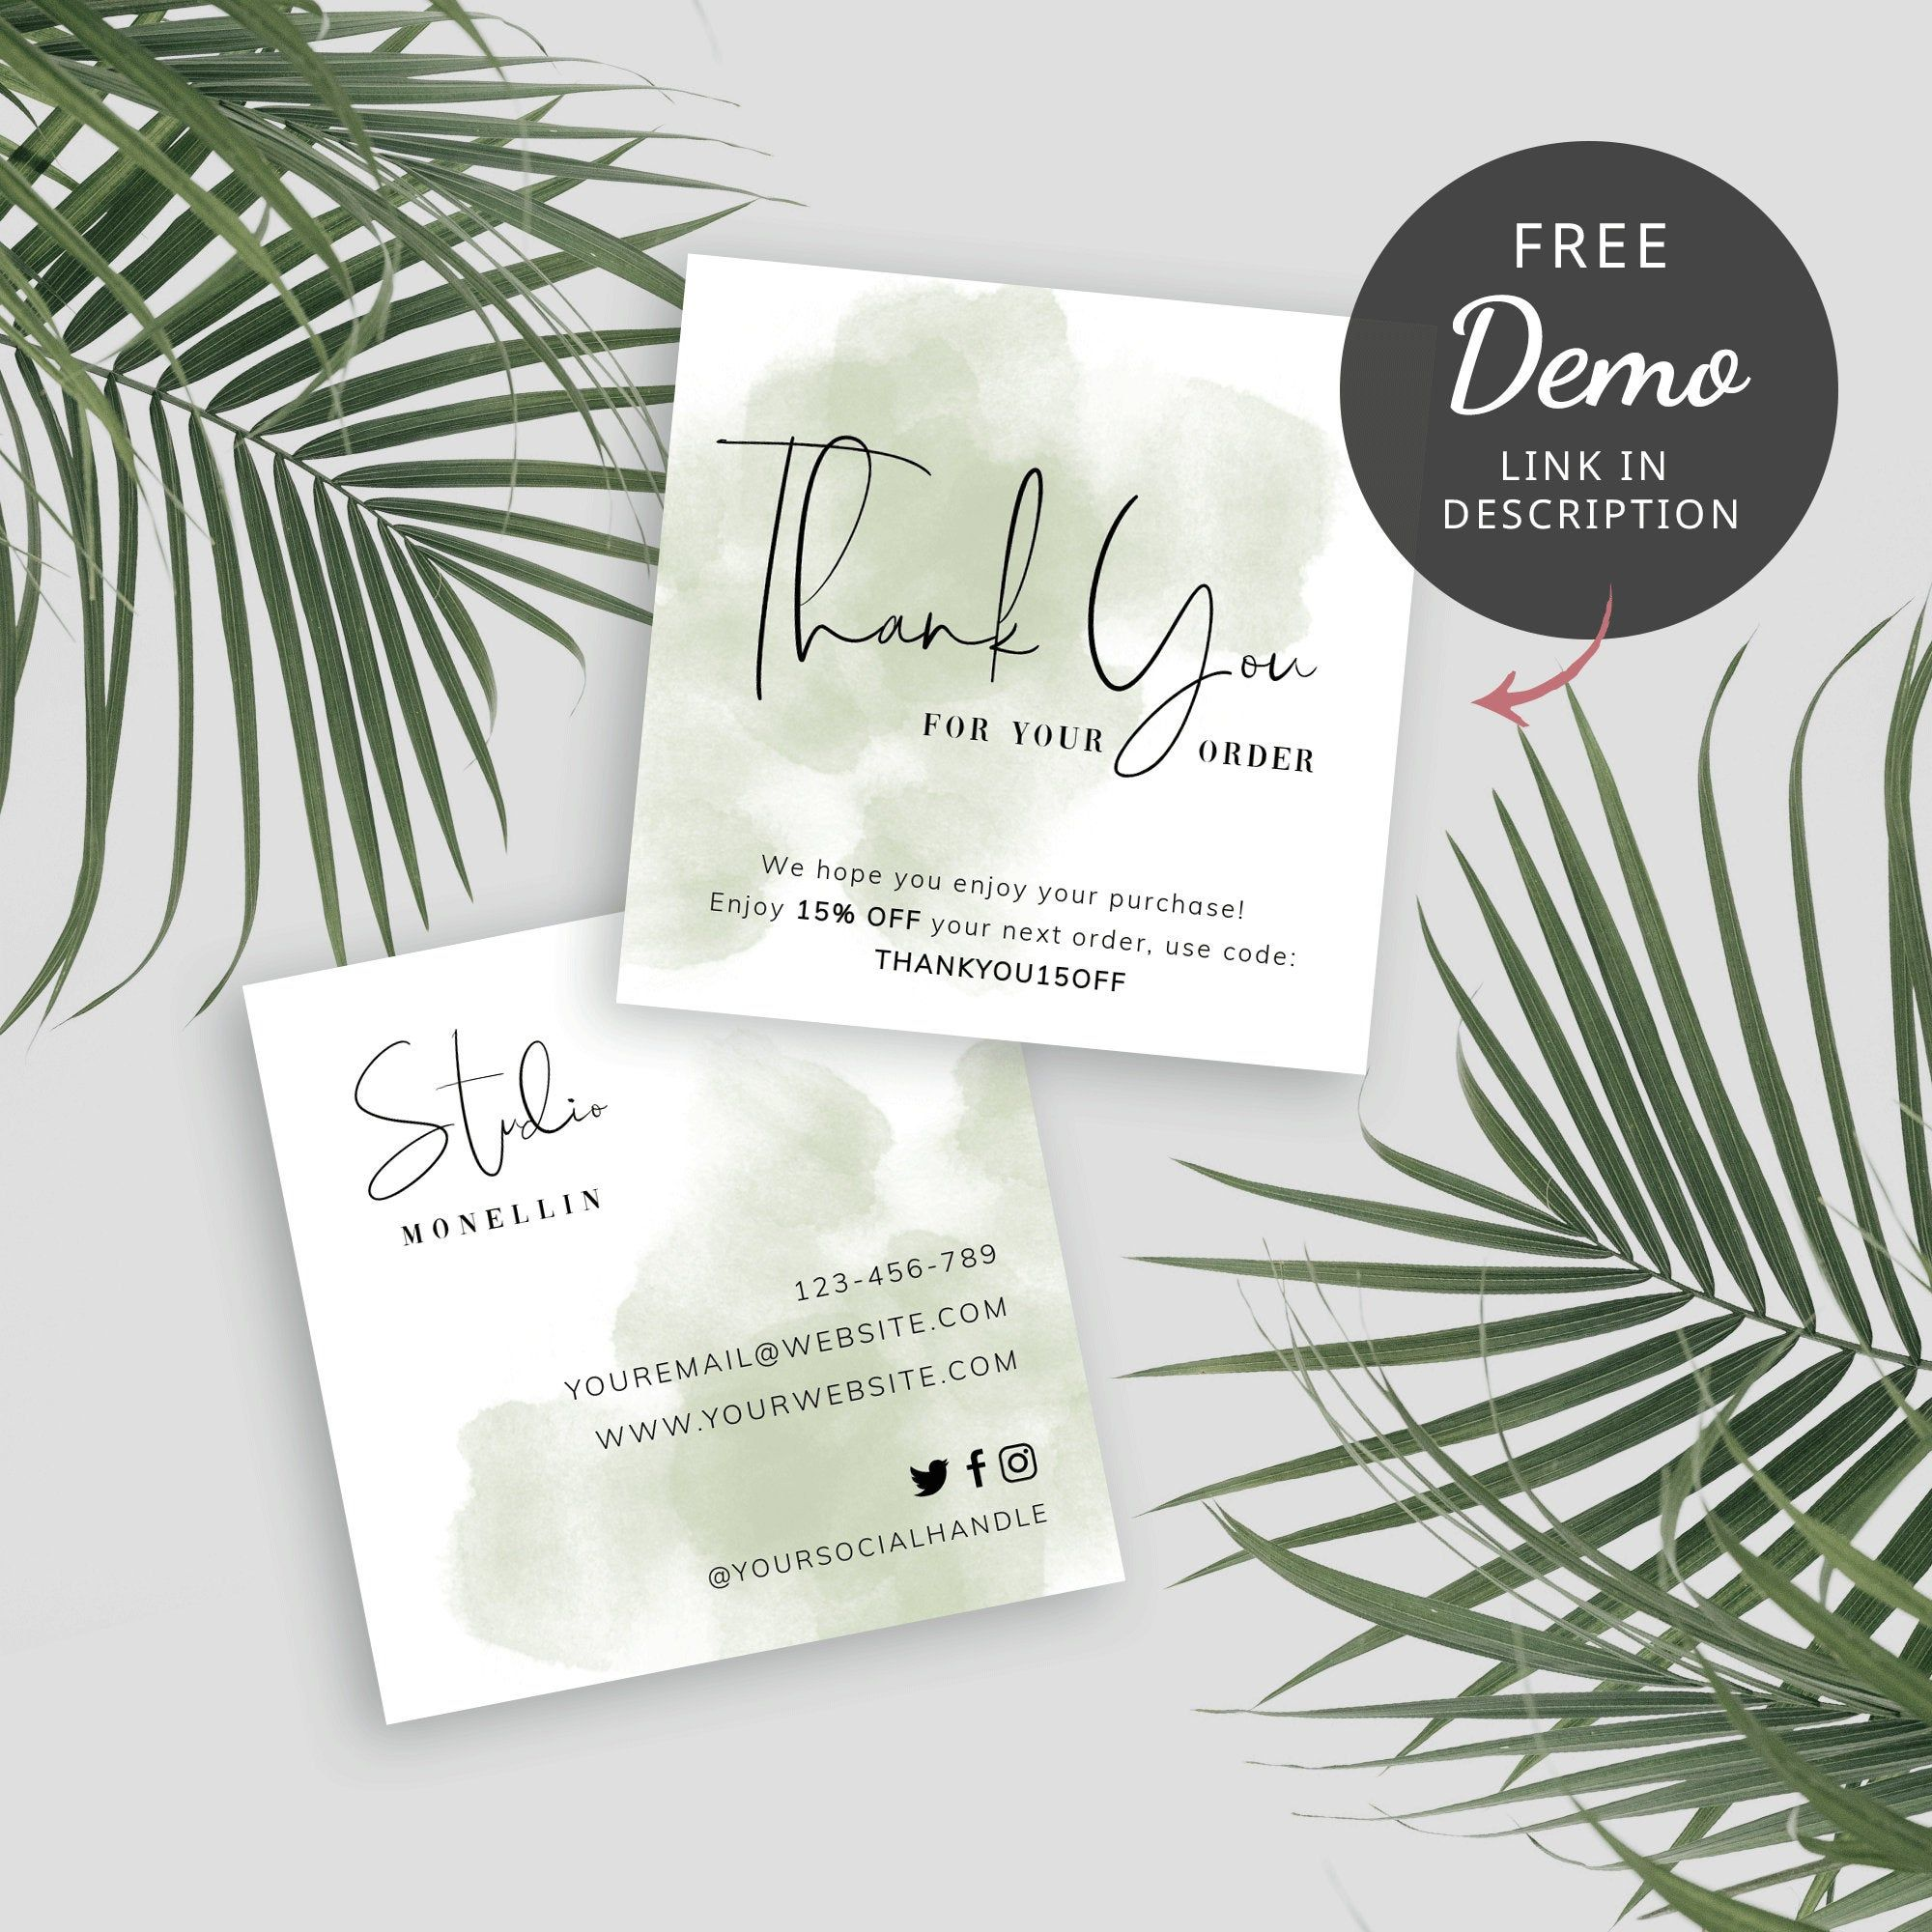 Mini Thank You For Order Card Template Diy Thank You For Purchase Cards Parcel Inserts Thank You Card Design Business Thank You Cards Business Cards Minimal